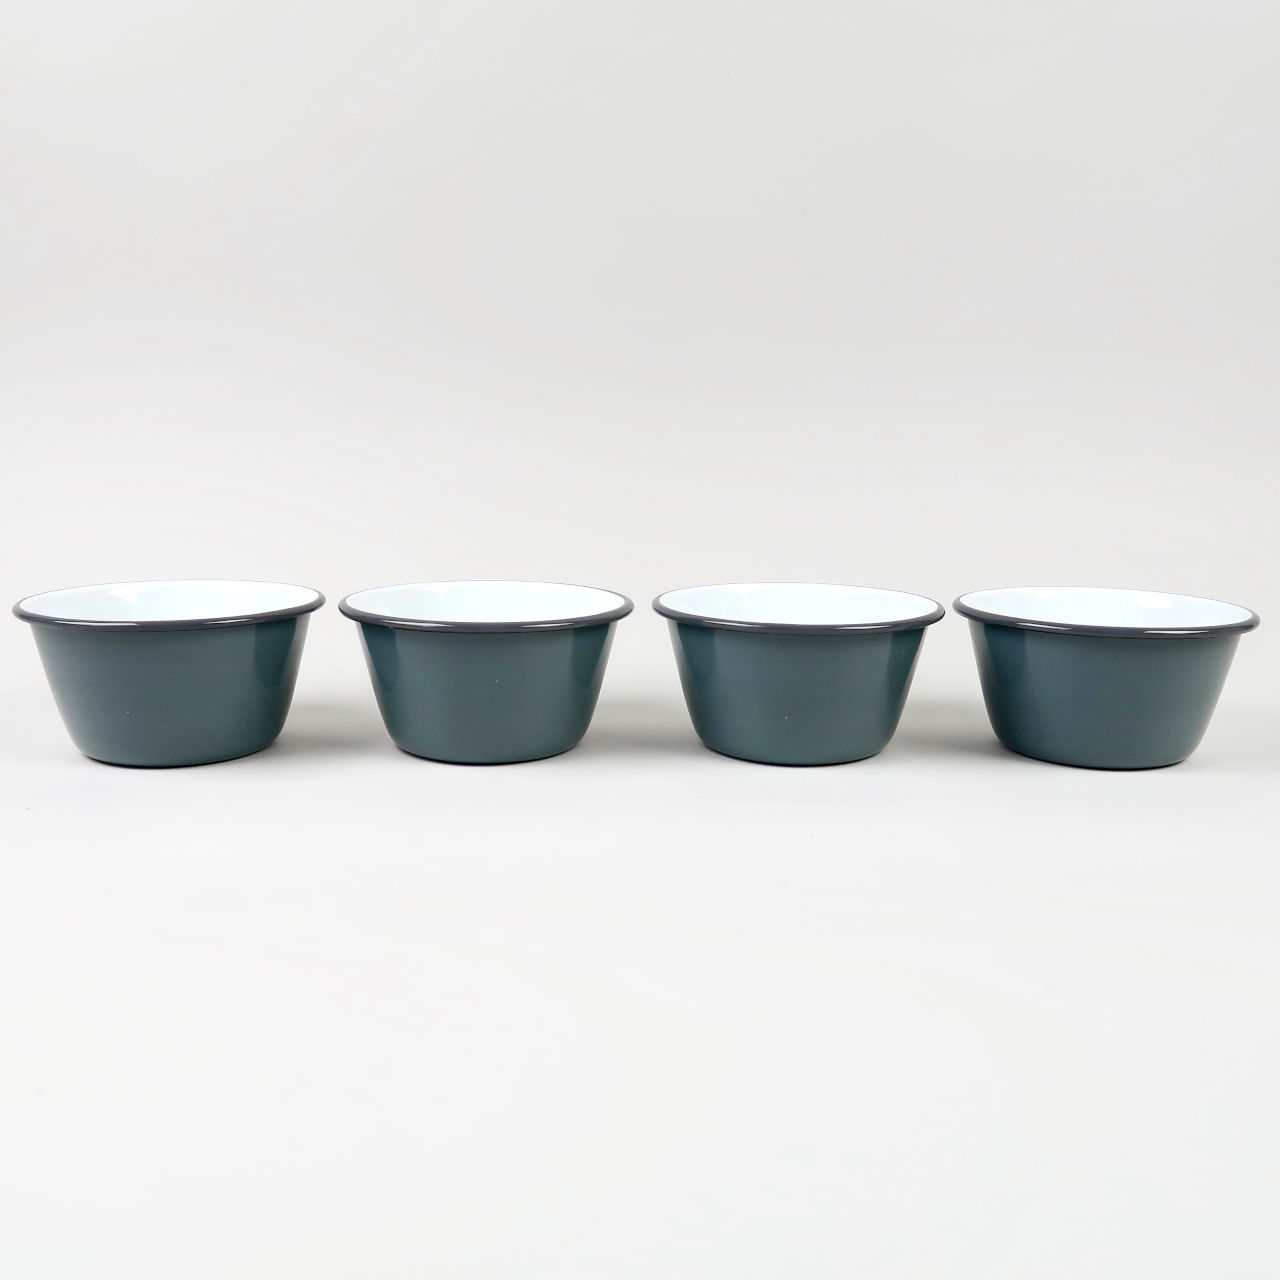 Box of 4 Small Enamel Bowls - Grey